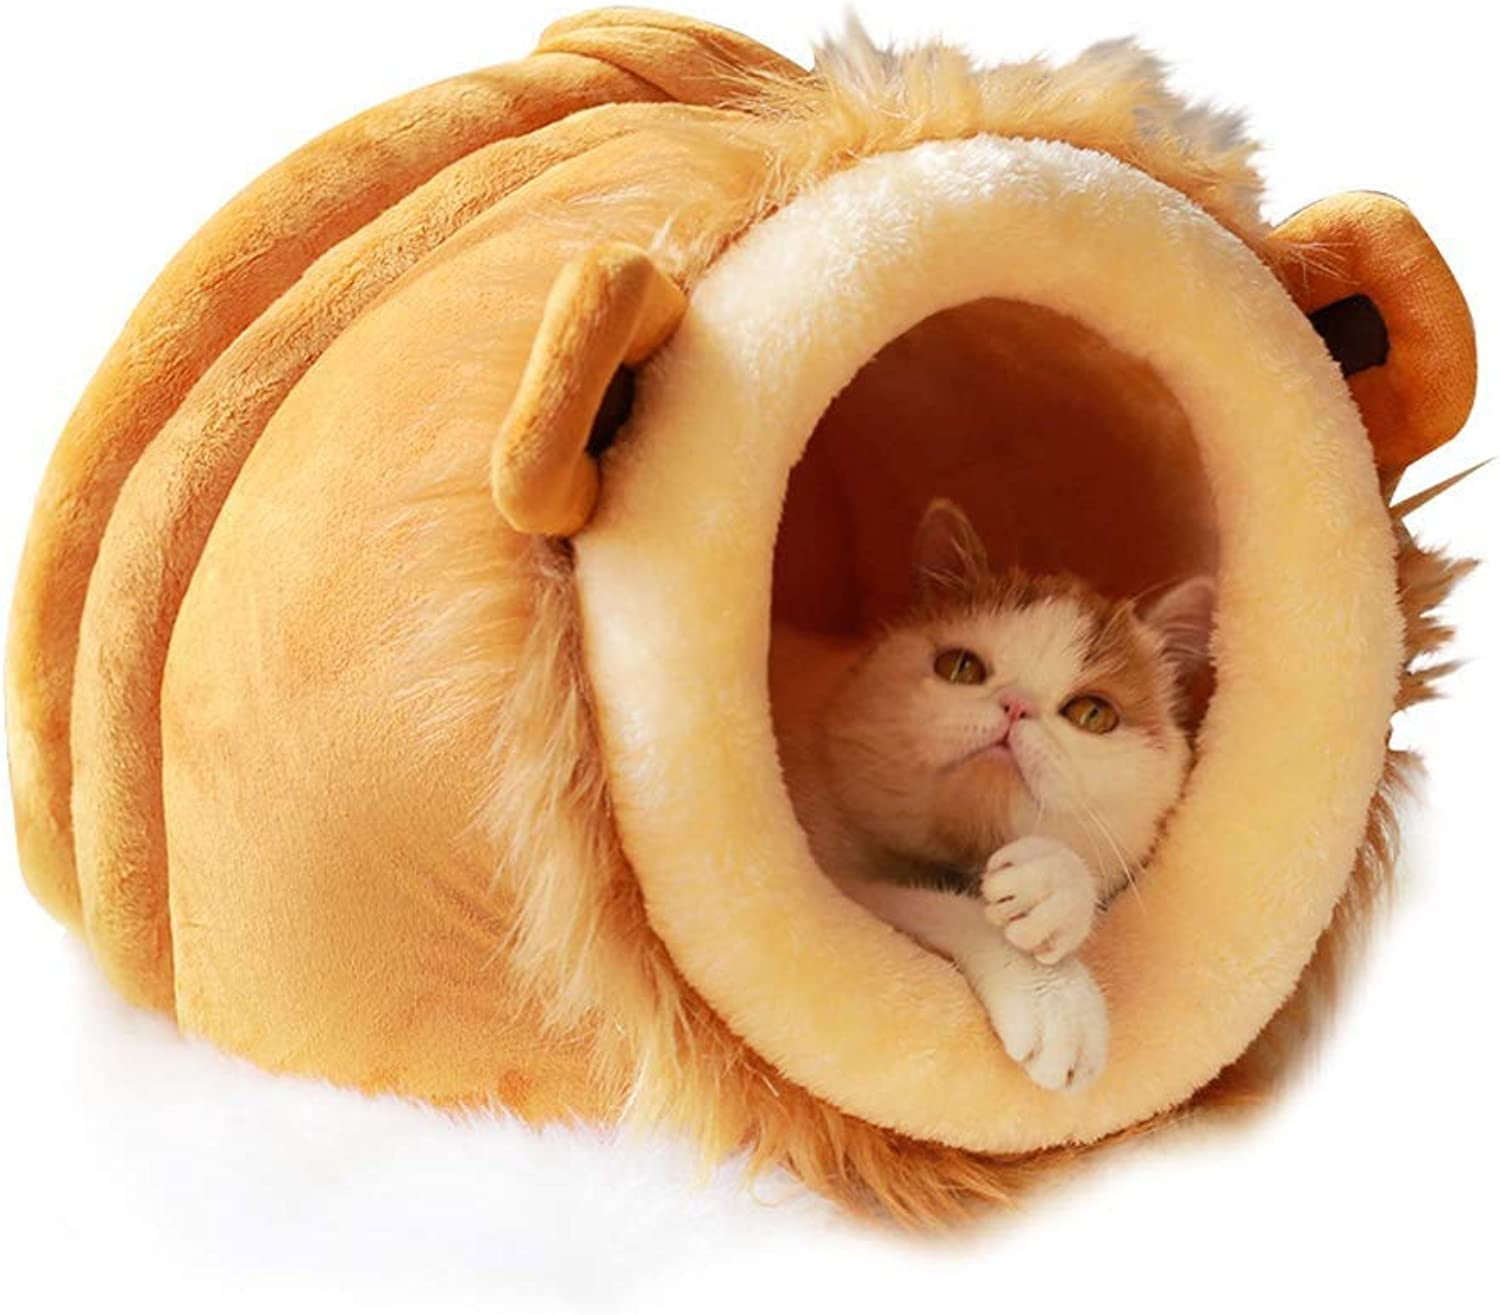 BHDYHM Pet Bed,Soft Pet Nest,Cat and Dog Cushion Bed,Dog Kennel,Dog Bed,Removable and Washable,Warm Pet Supplies Four Seasons Universal Suitable for Pets